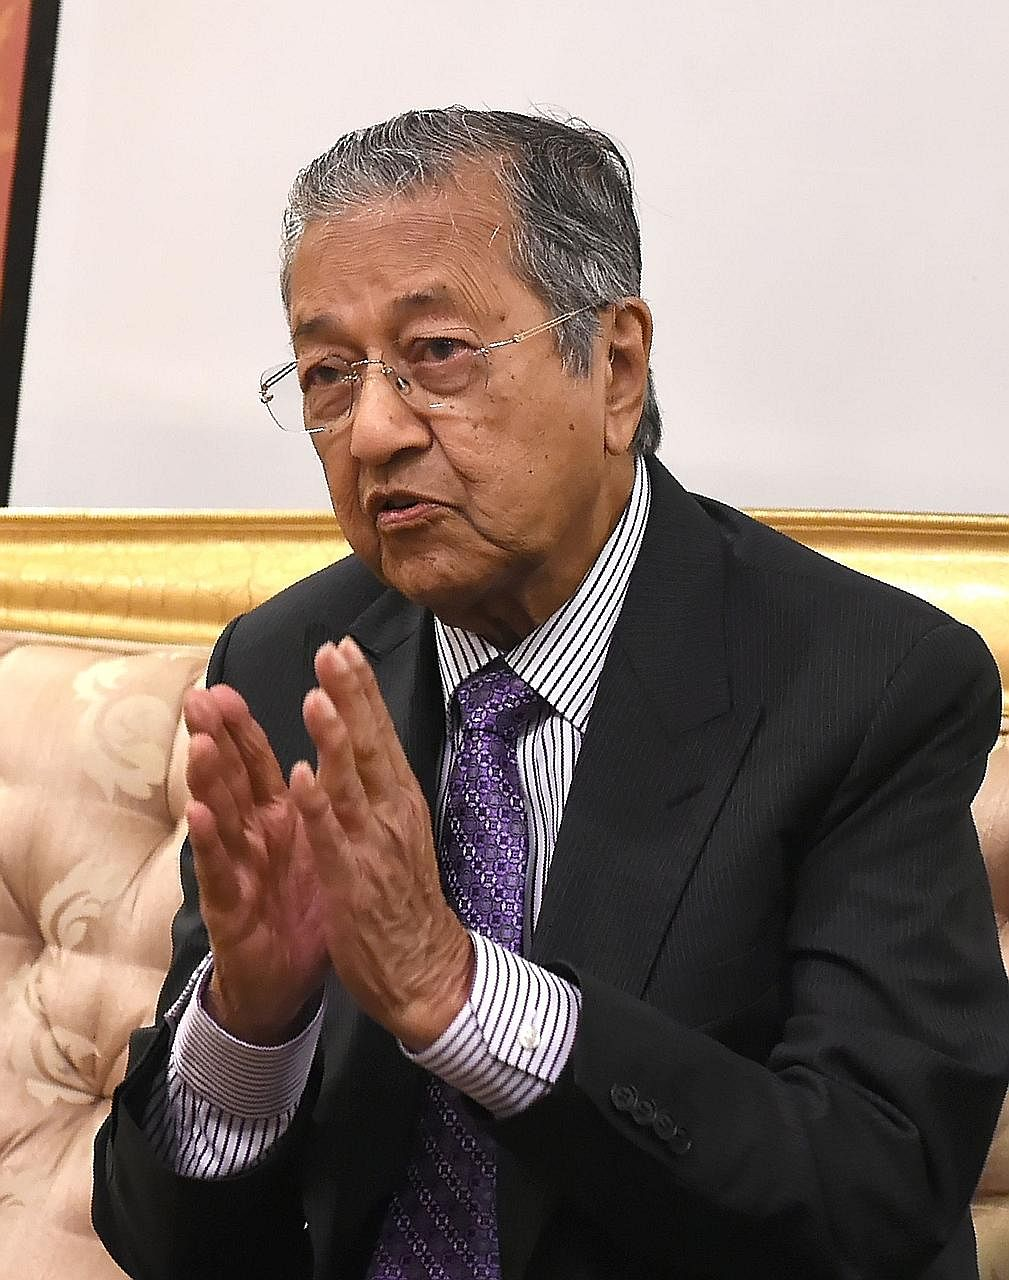 Dr Mahathir's de facto leadership of the opposition's campaign to dislodge Datuk Seri Najib over graft claims linked to financial mismanagement at 1MDB has divided opinion.